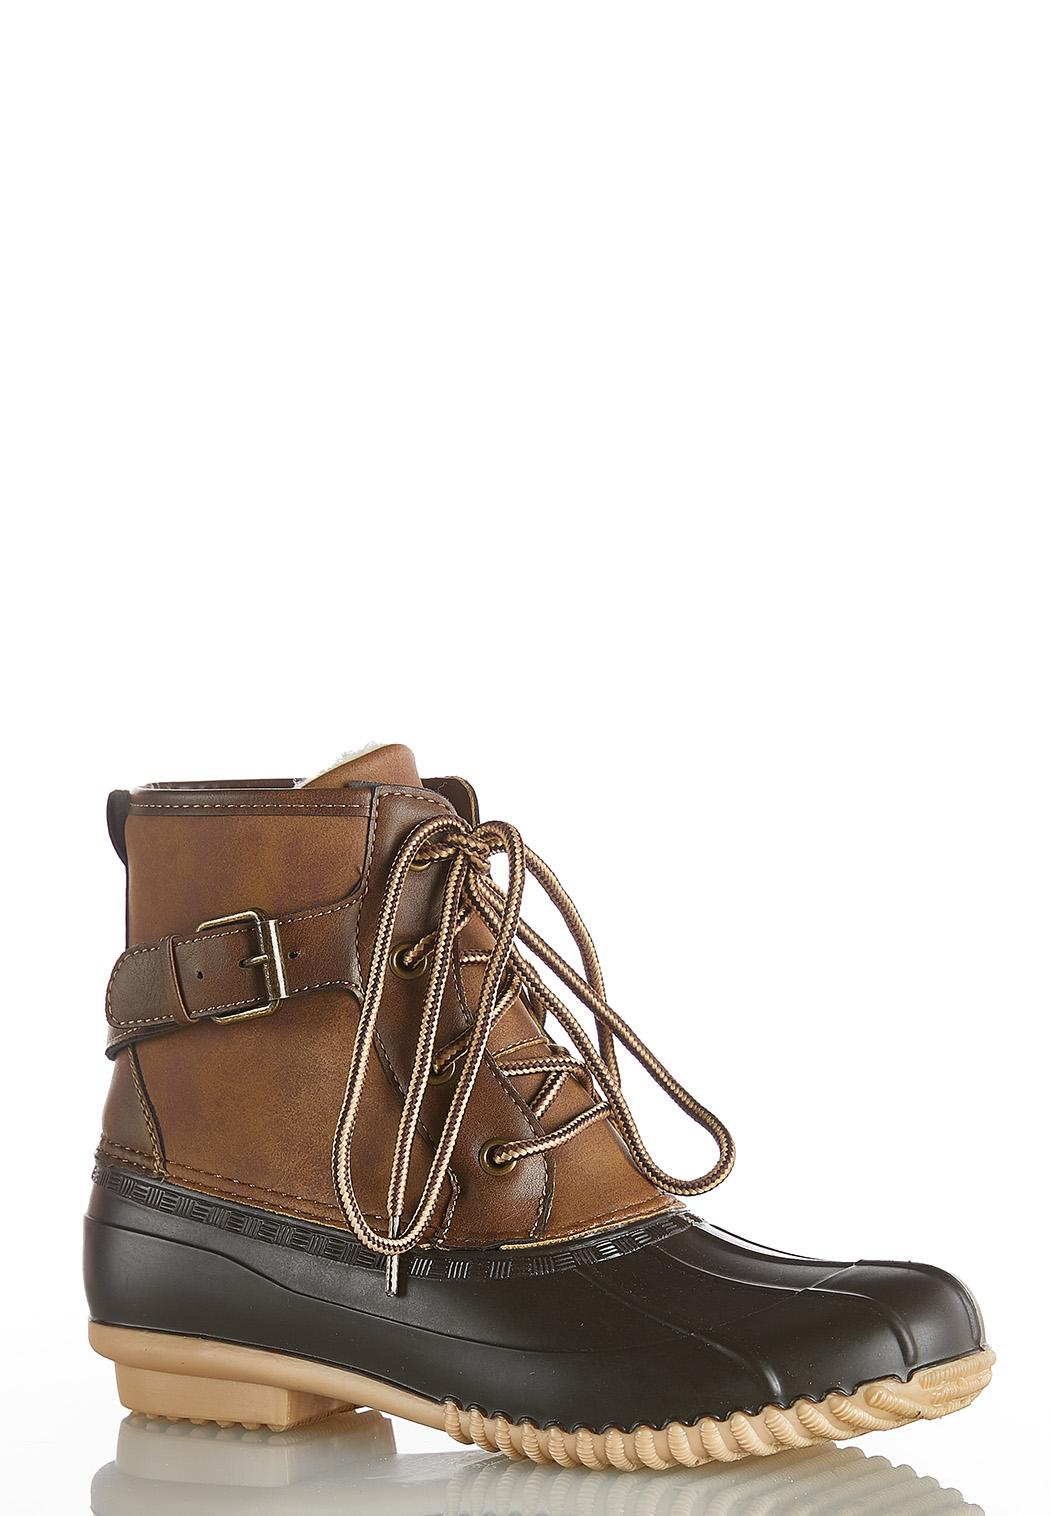 Buckle Side Duck Boots